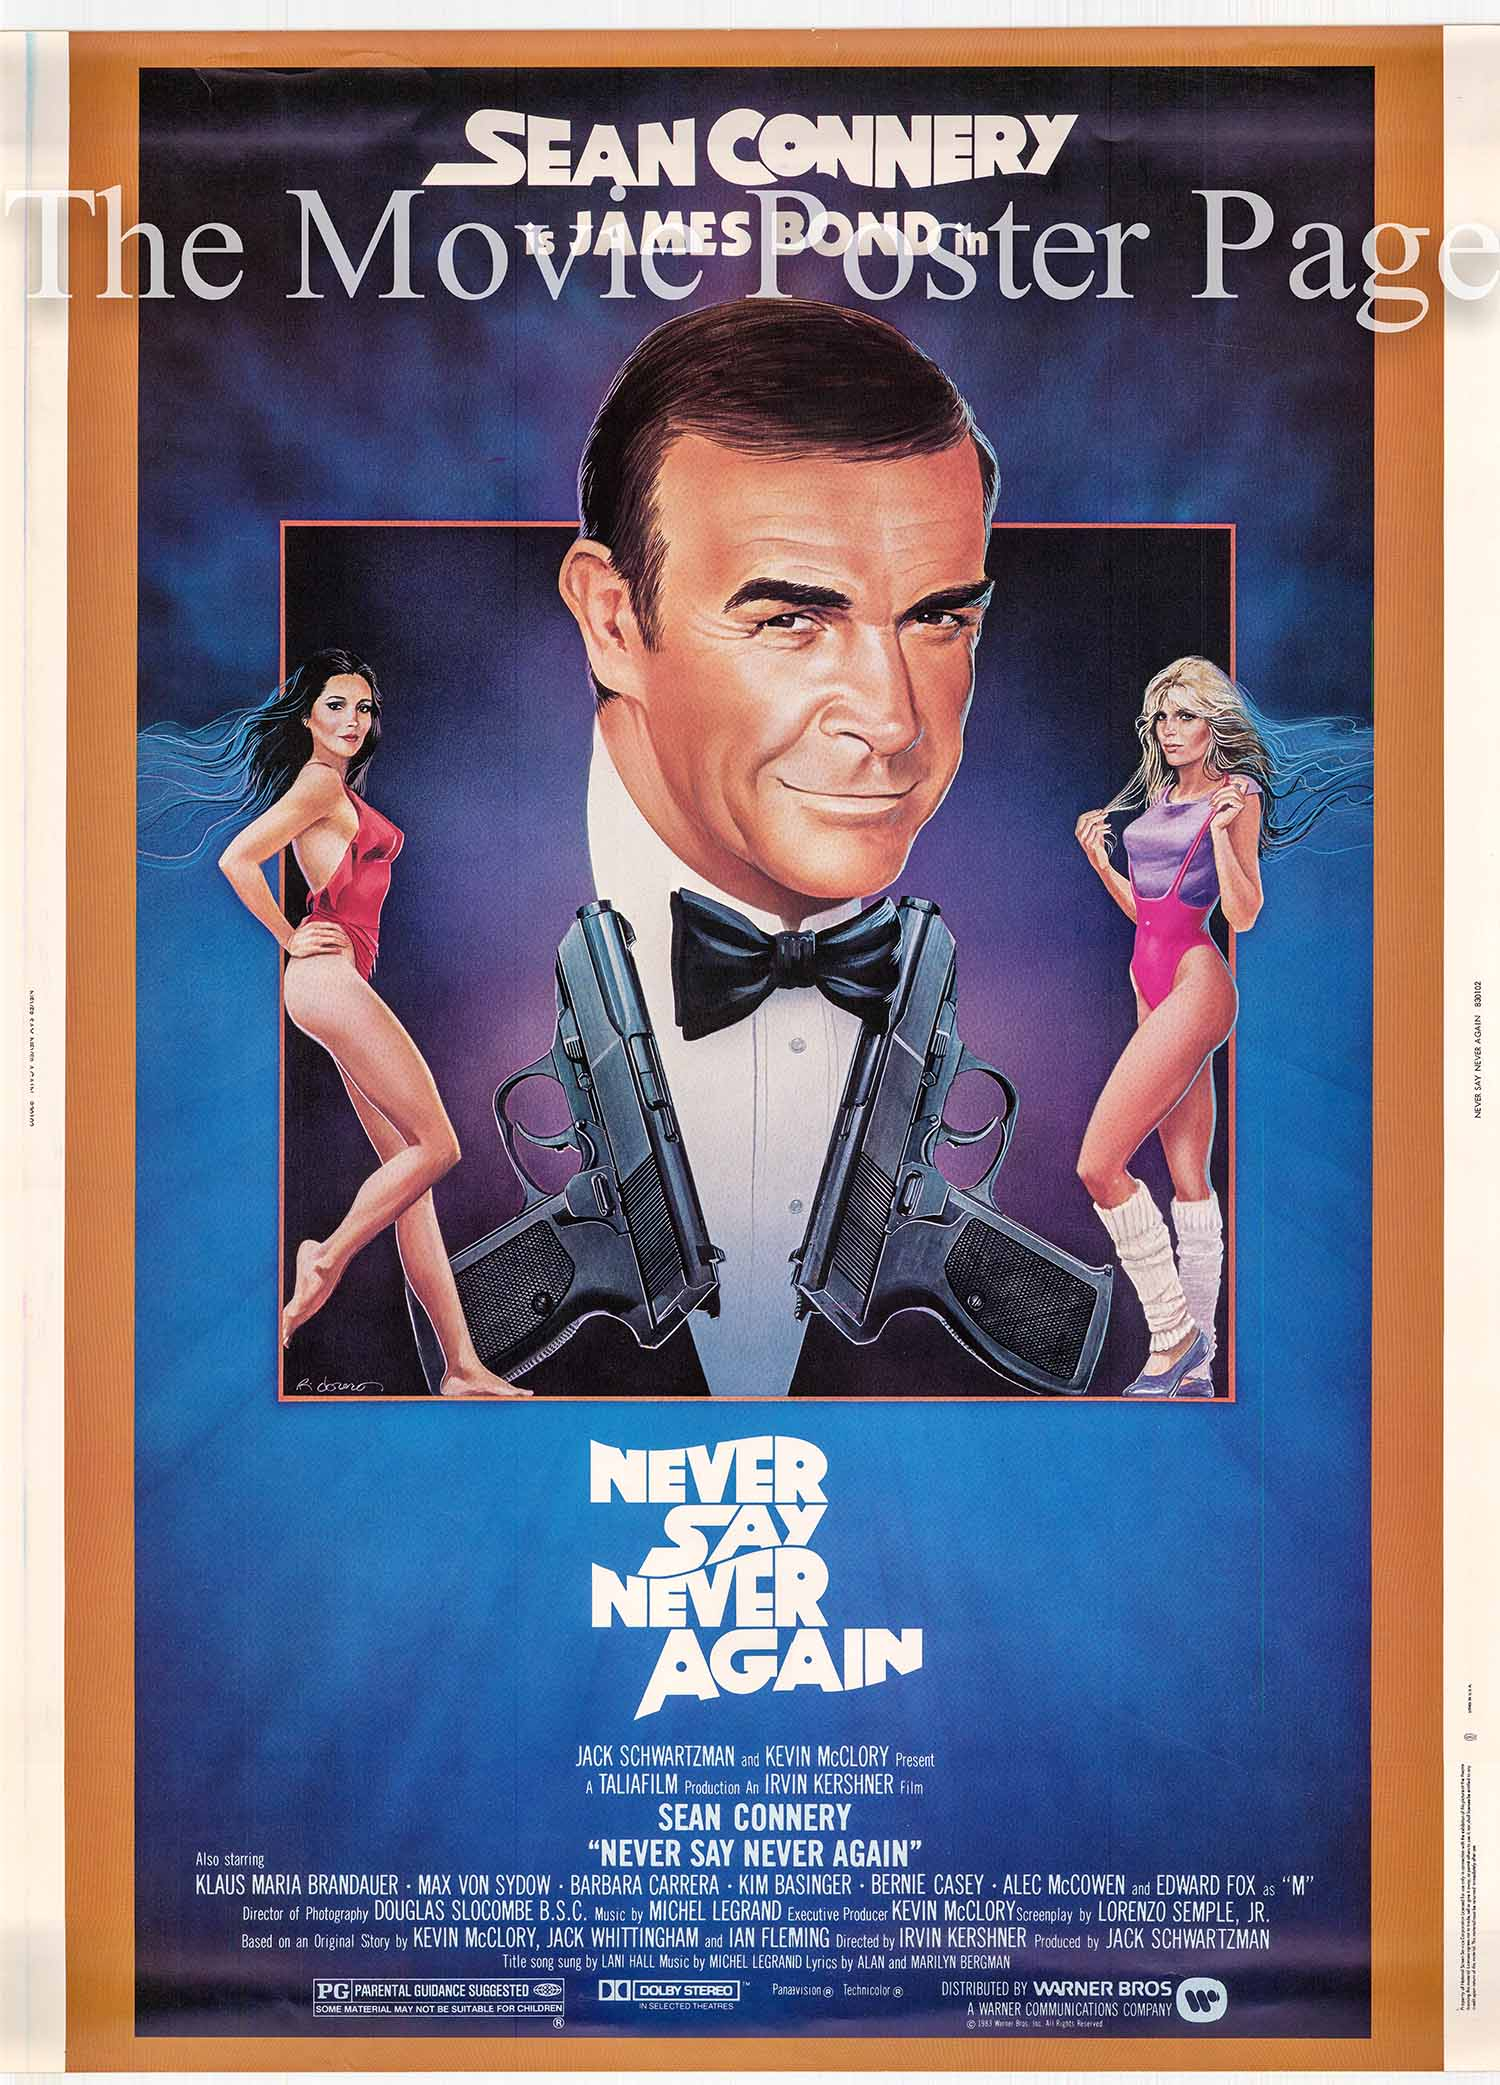 Pictured is a US promotional 30x40 poster for the 1983 Irvin Kershner film Never Say Never Again starring Sean Connery.